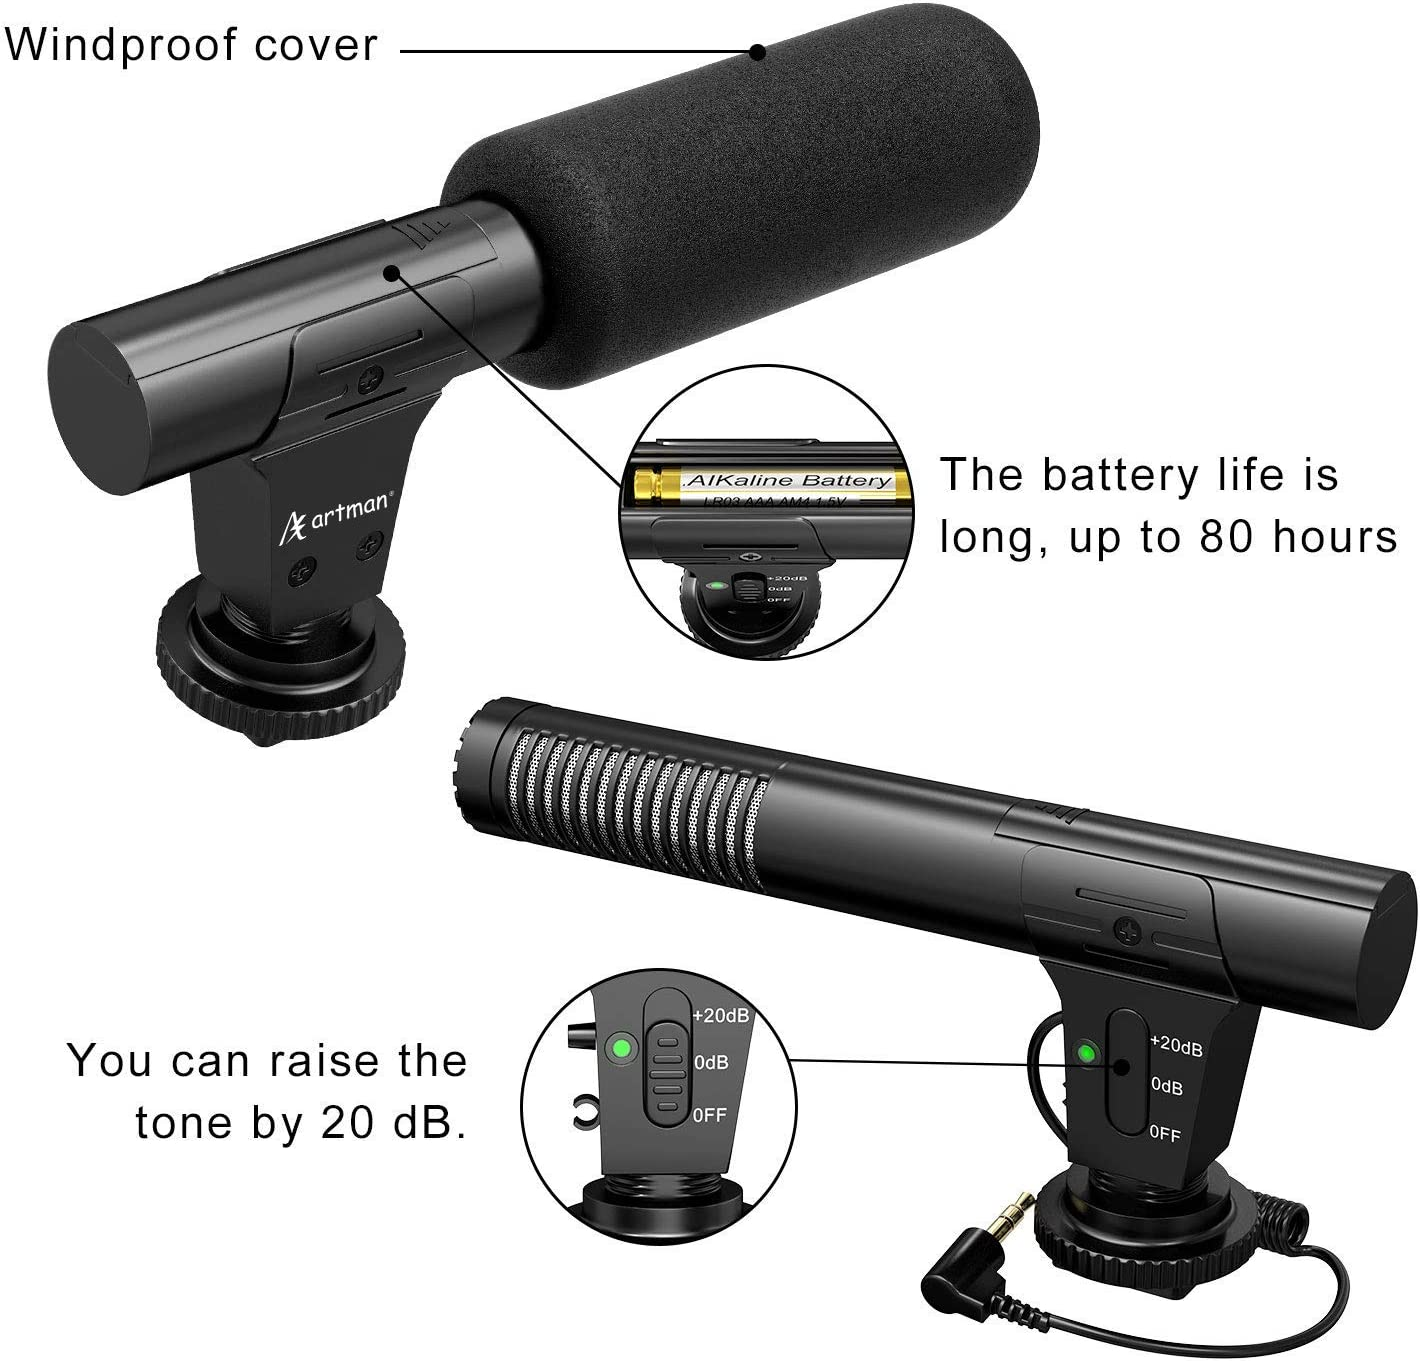 Artman Camera Video Microphone,Interview Video Mic Recording Voice Microphones Compatible with GoPro Hero 5//6//7//8,Canon,Nikon,Sony and More DSLR Camera//Camcorders with 3.5mm Interface